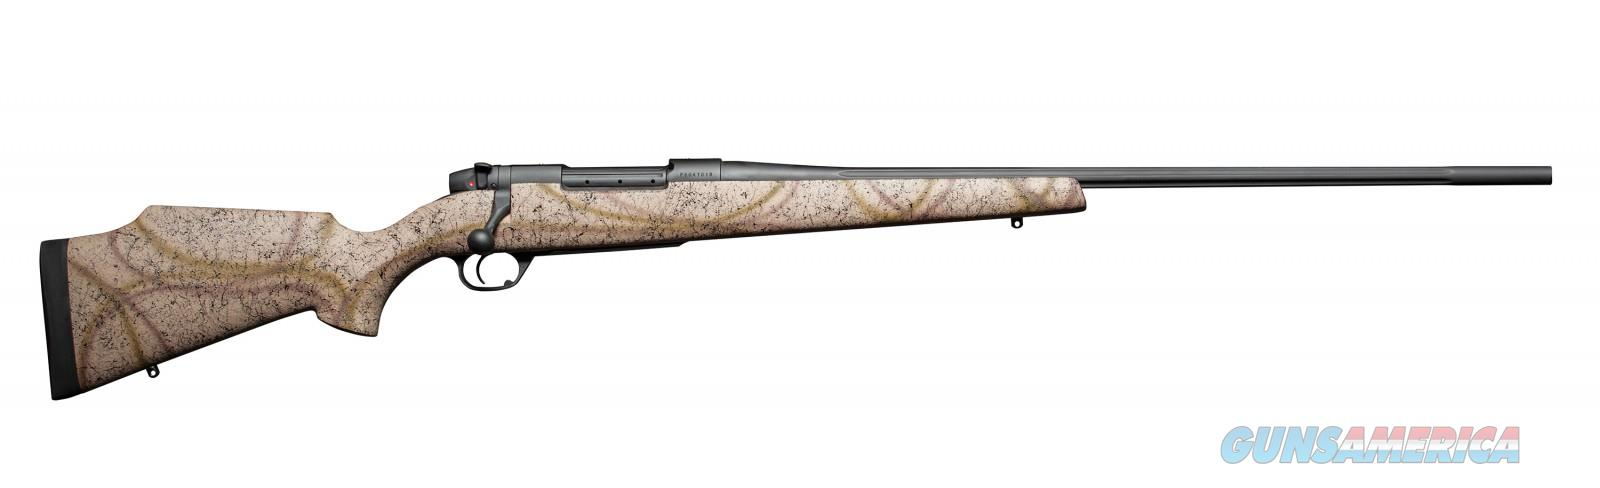 "Weatherby Mark V Outfitter .270 Winchester 22""  MOTS270NR2O   Guns > Rifles > Weatherby Rifles > Sporting"